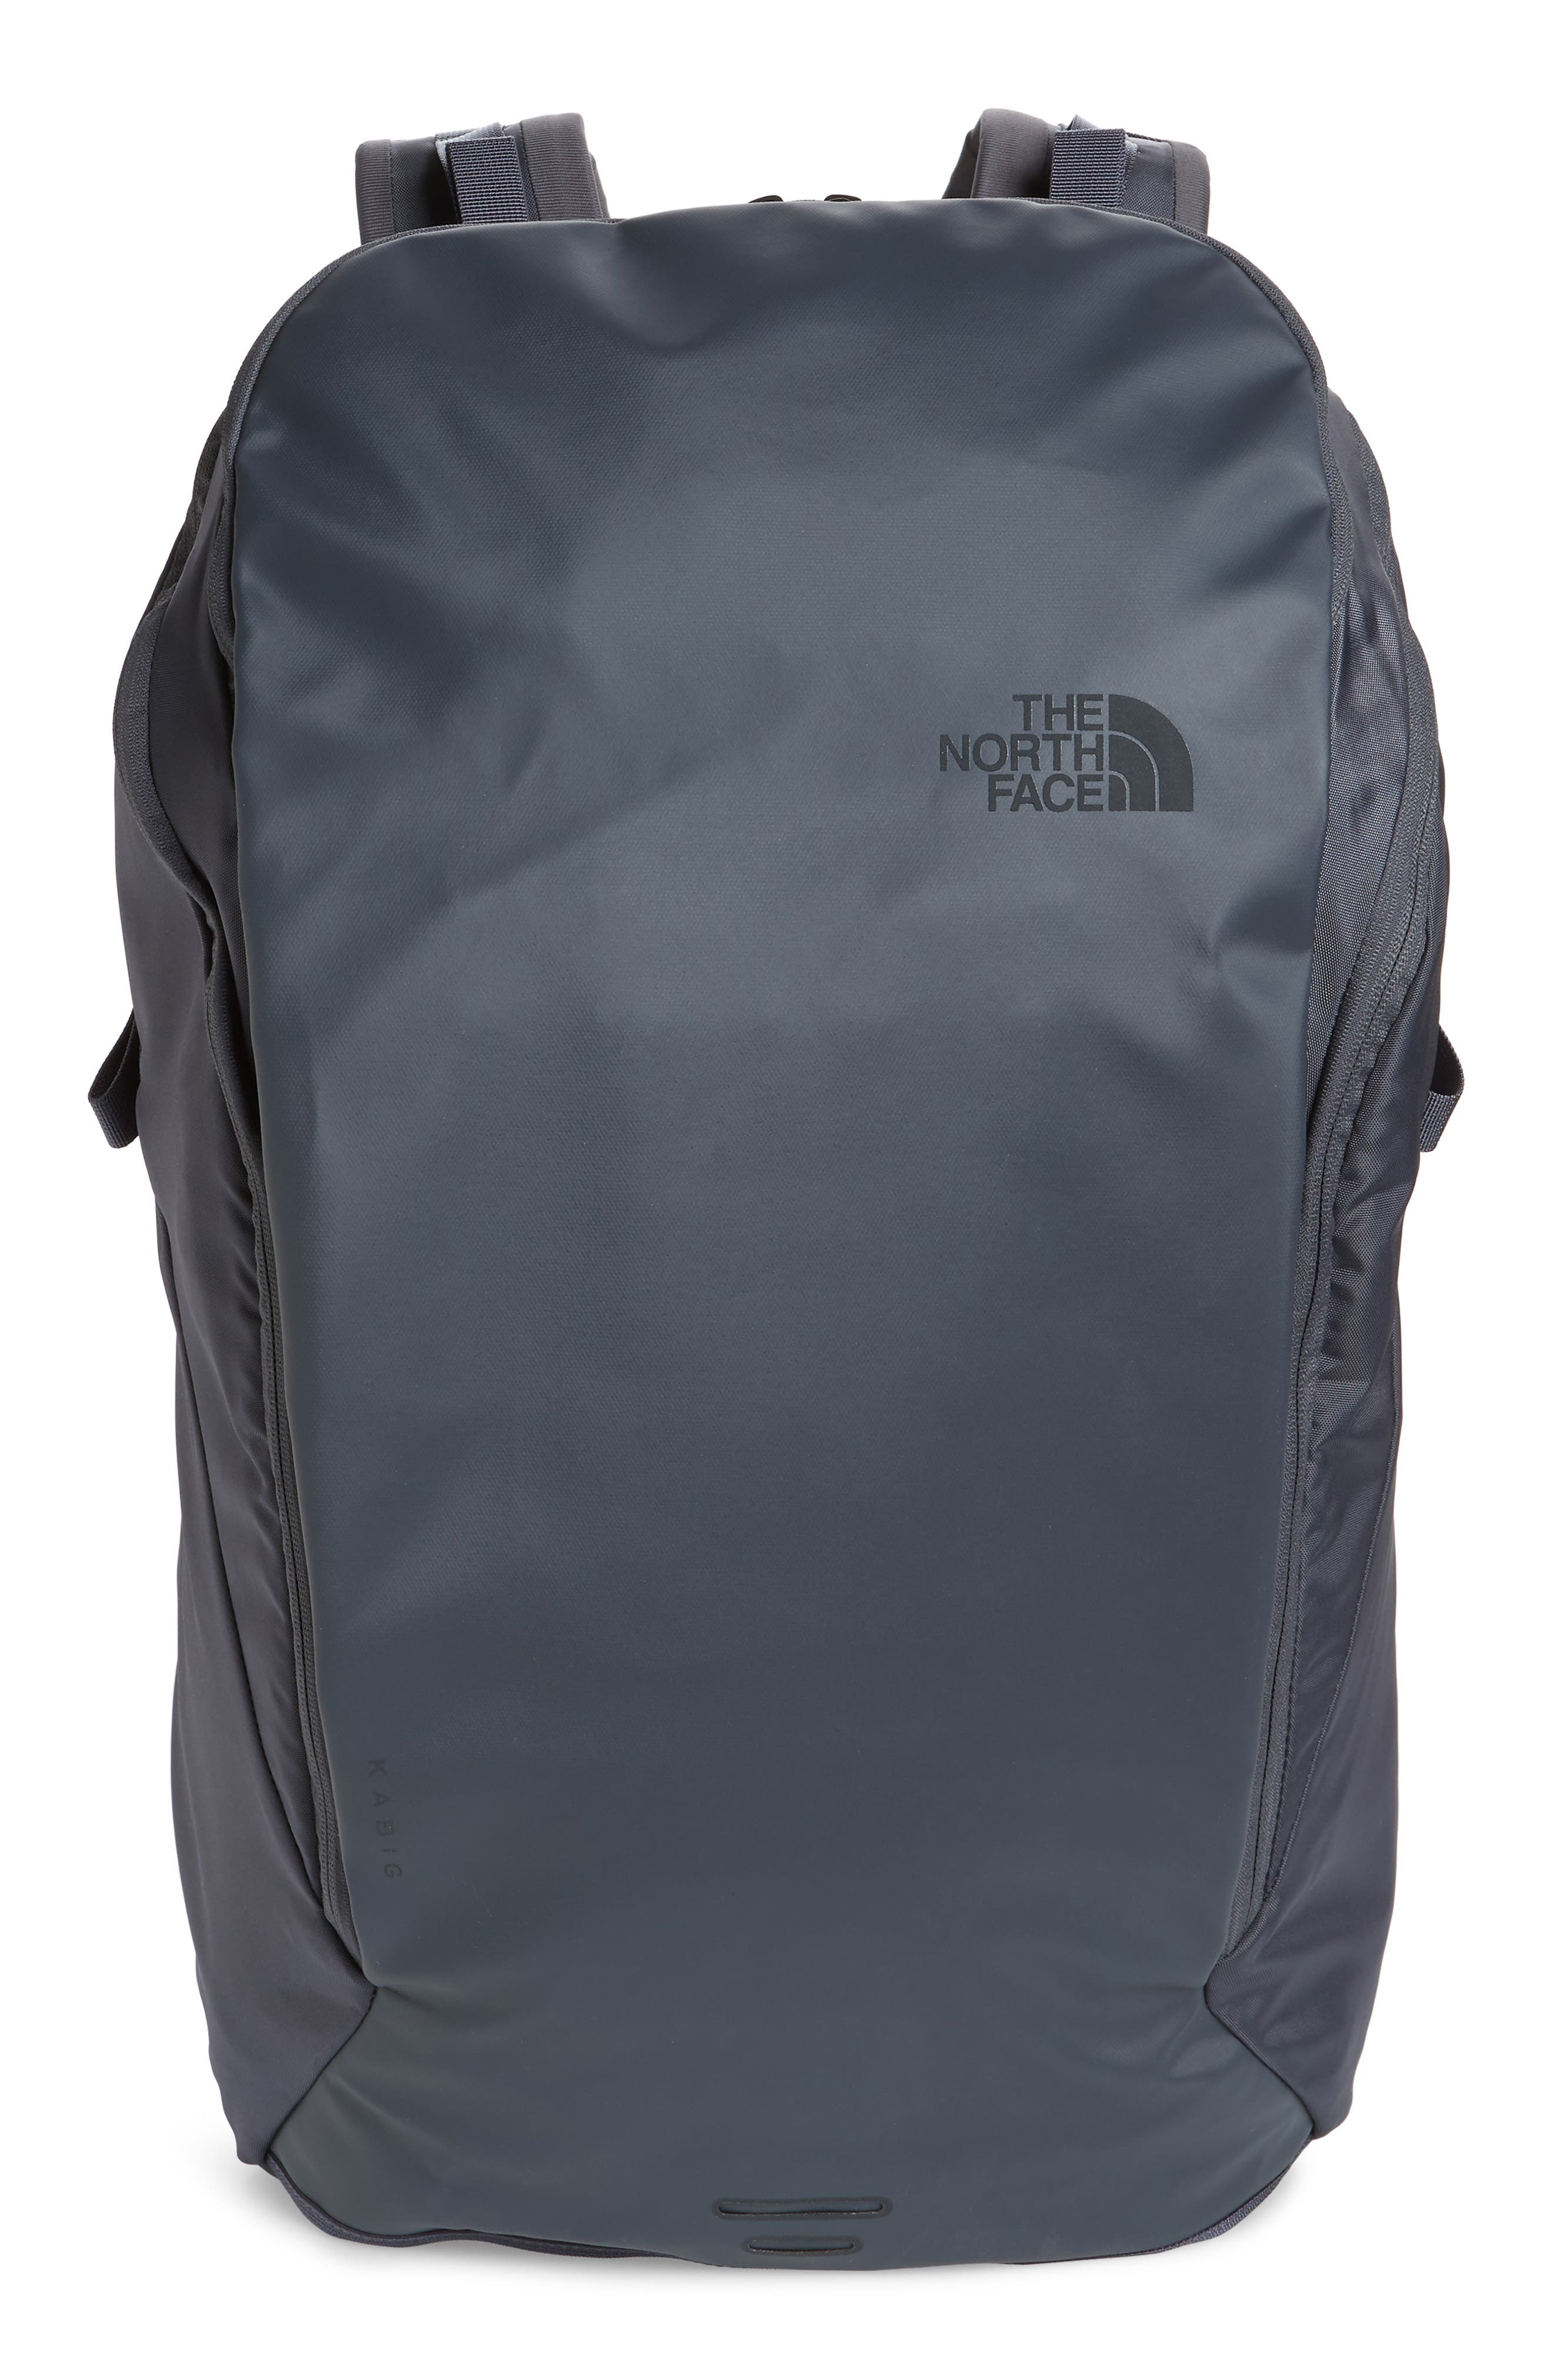 KABIG BACKPACK - GREY